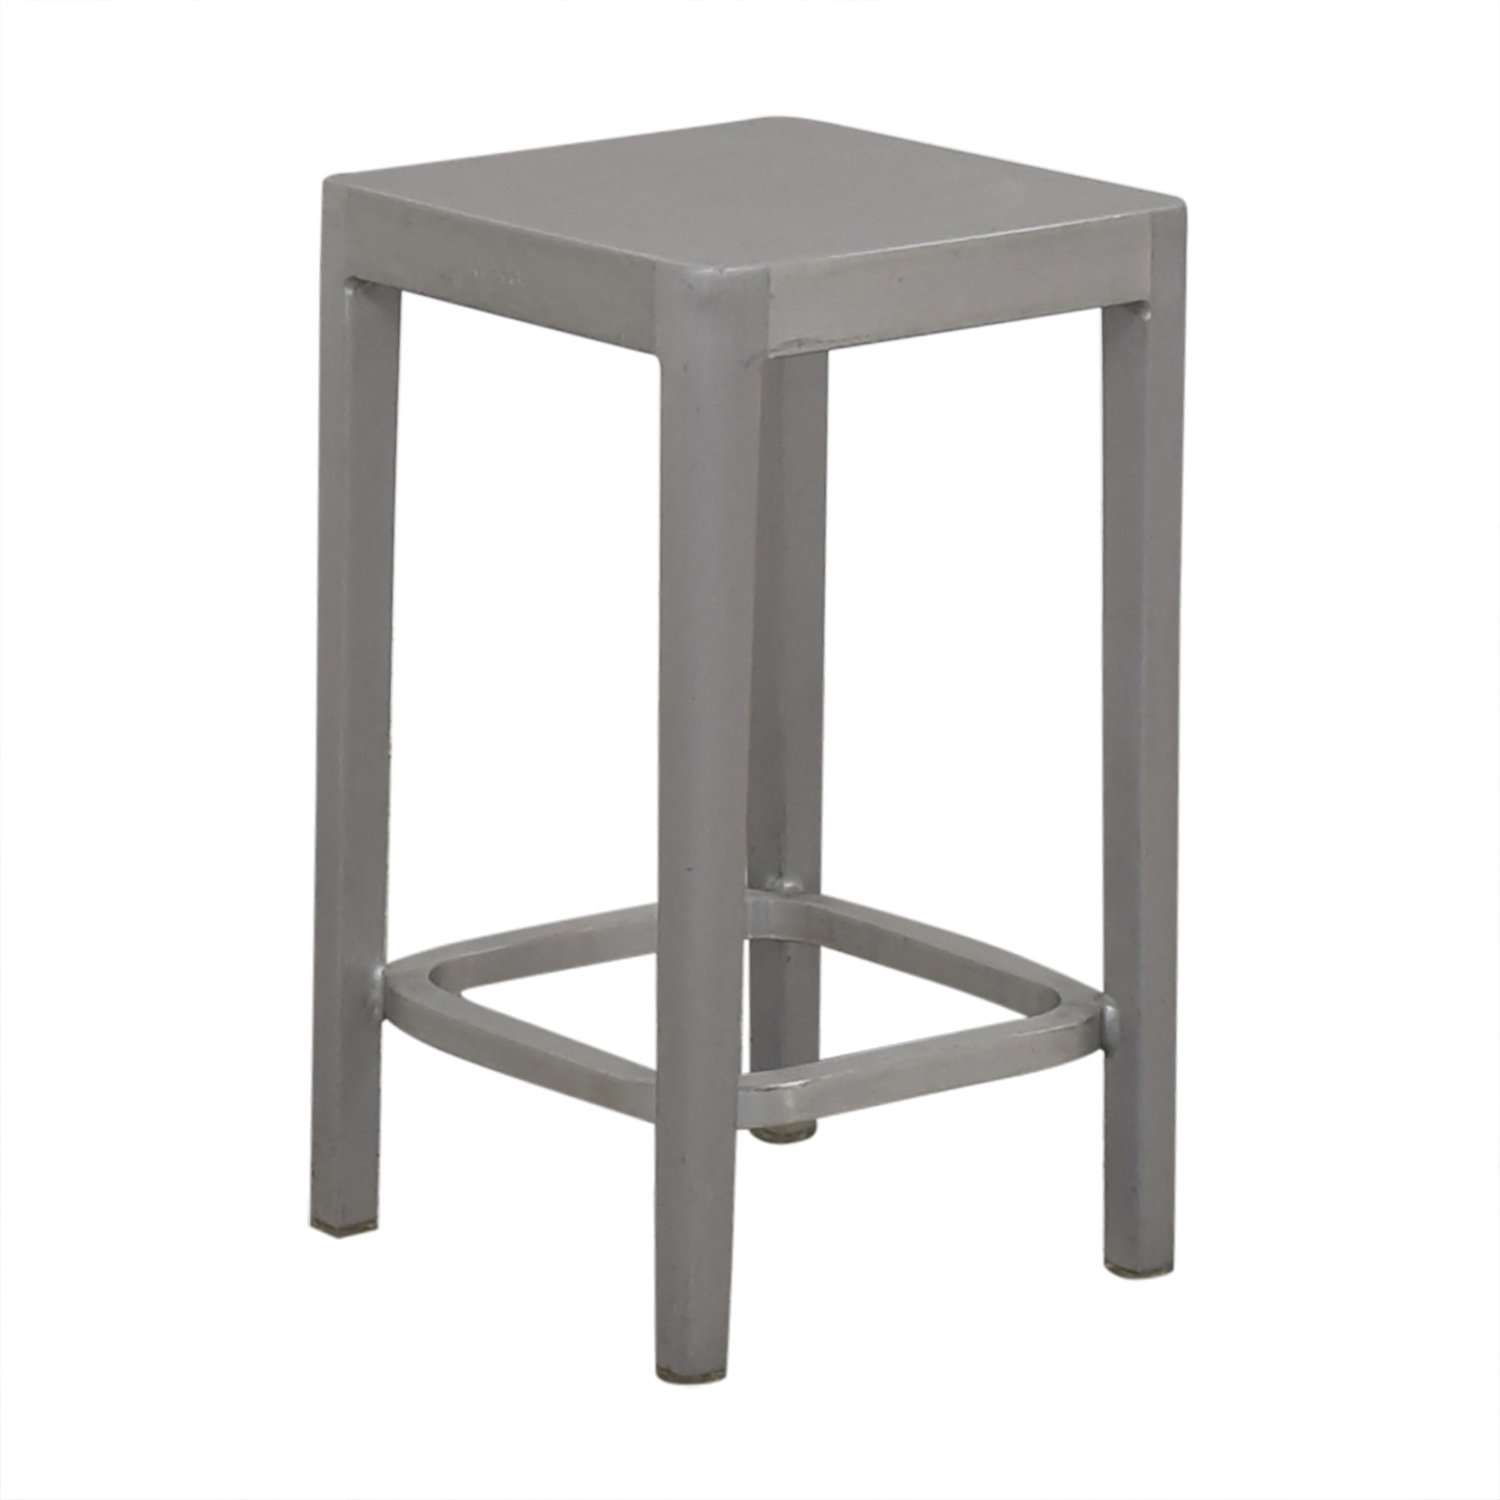 shop Design Within Reach Emeco Counter Stool Design Within Reach Stools